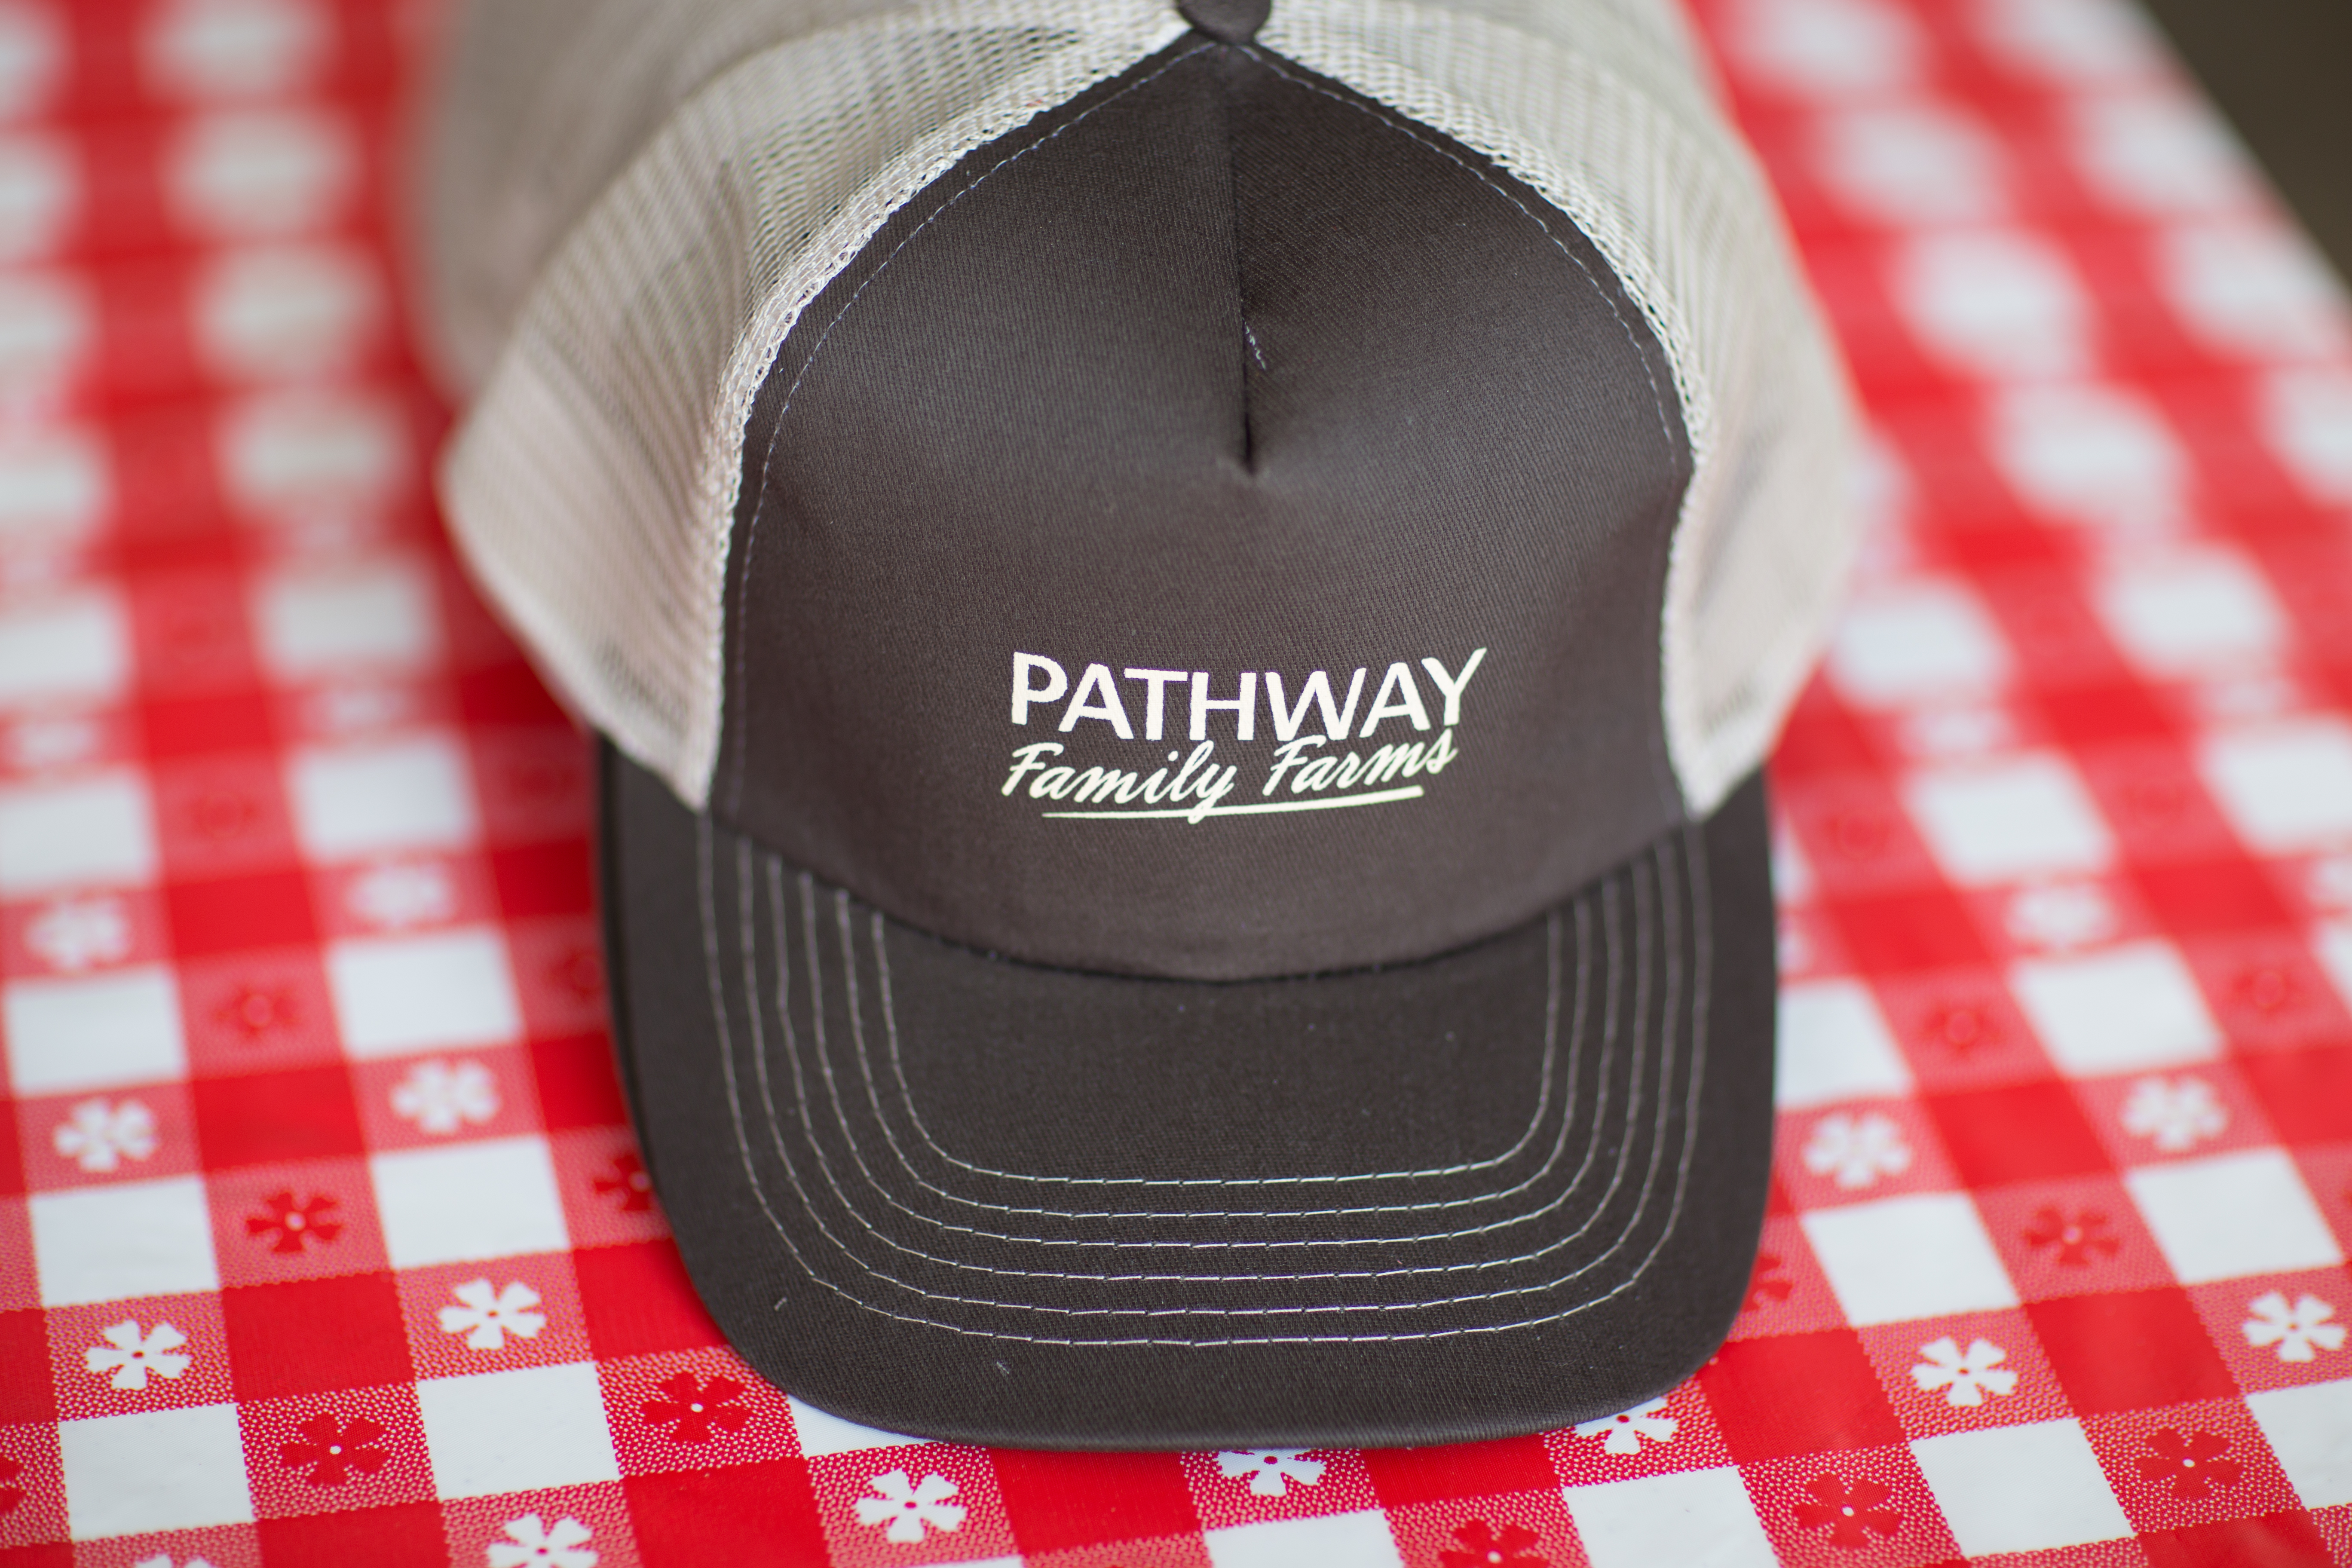 Pathway Family Farms